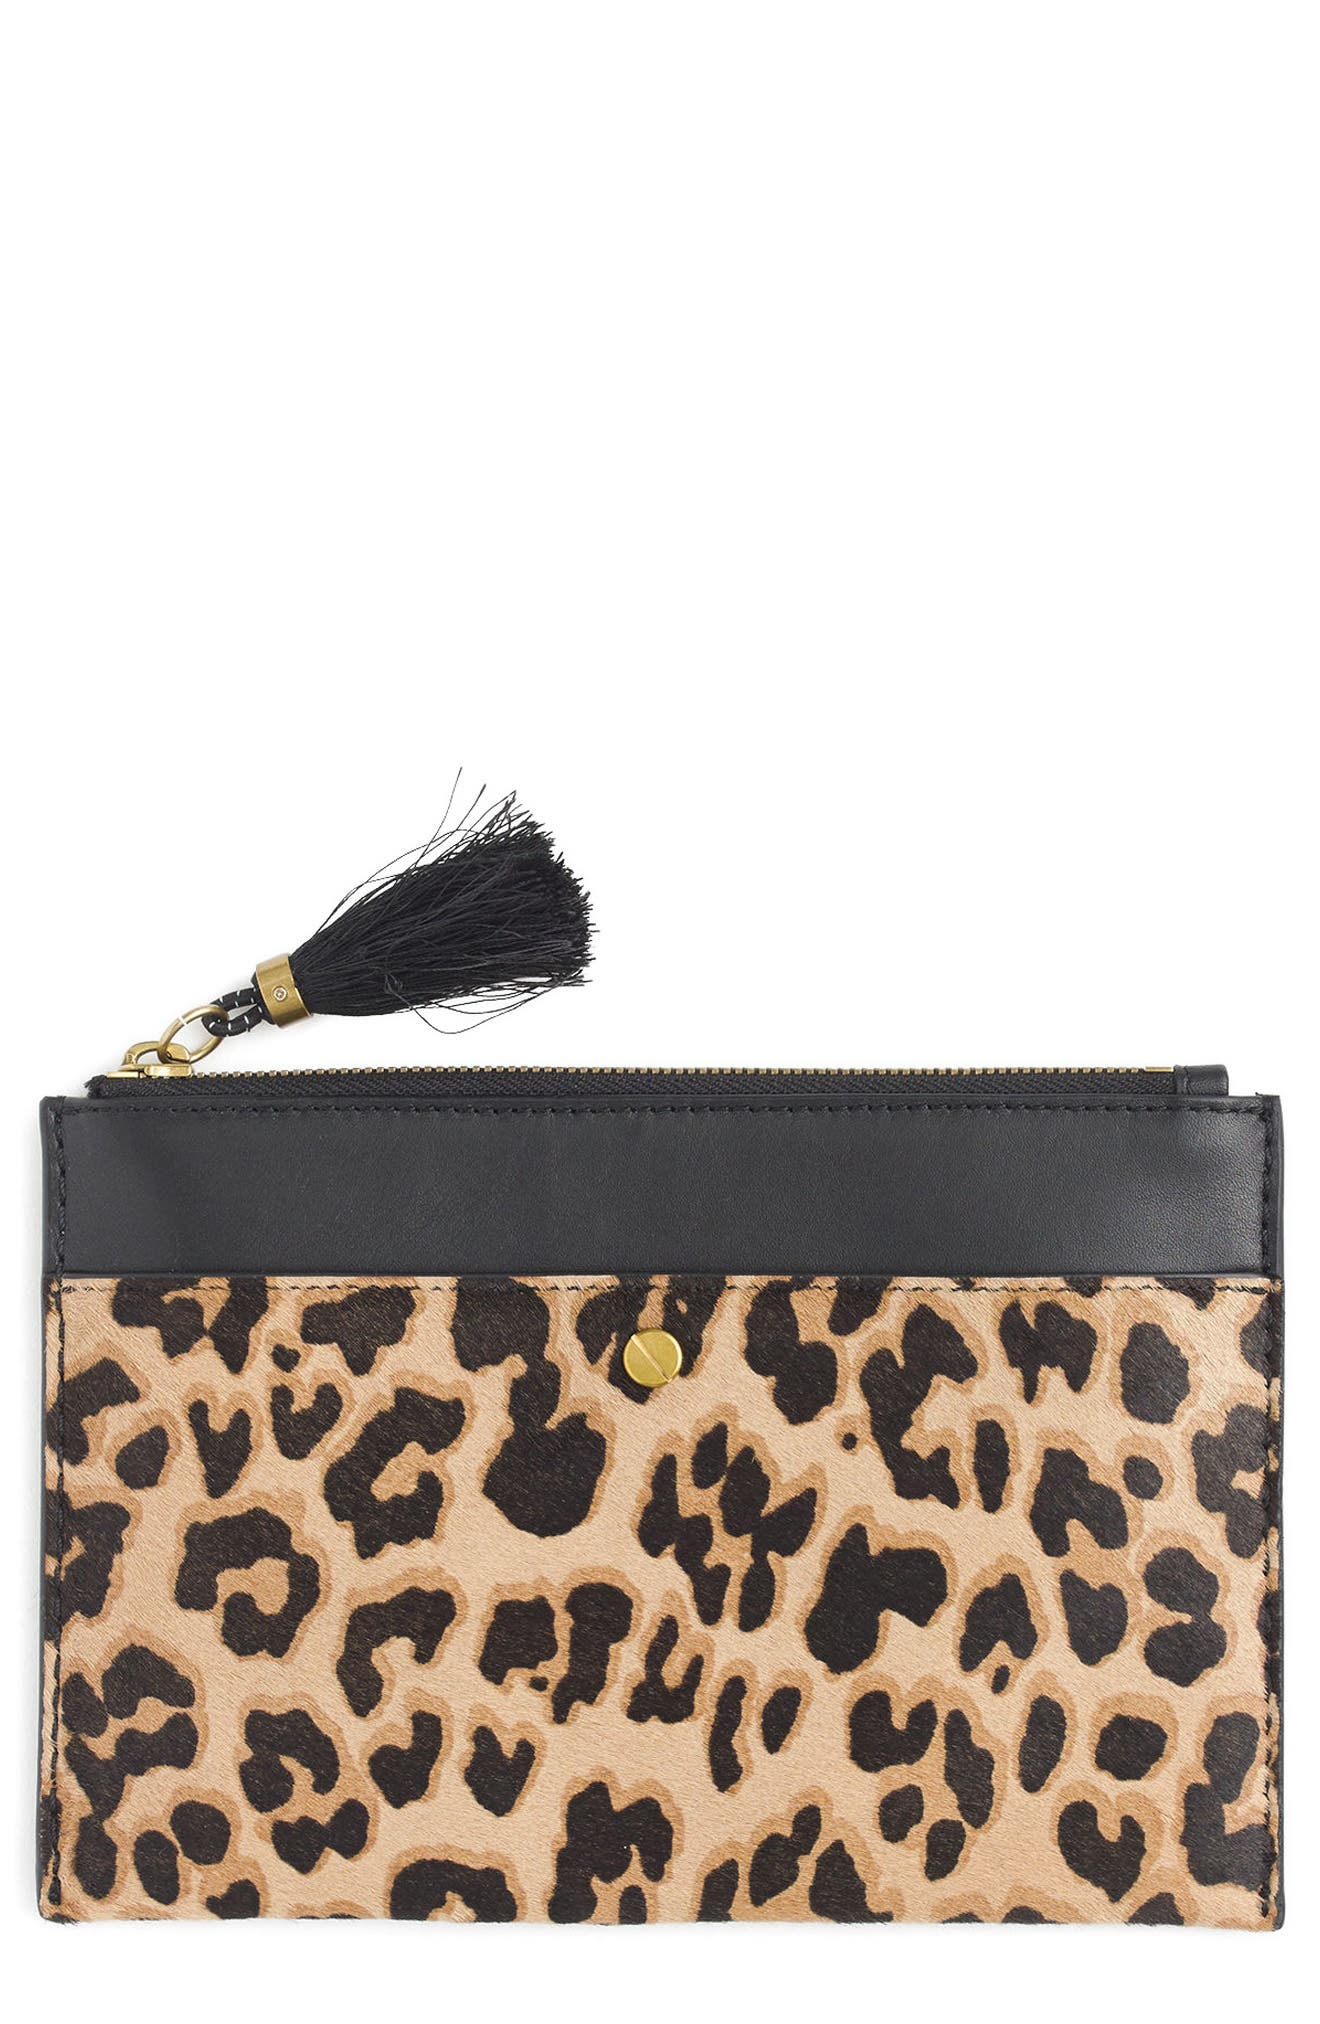 Main Image - J.Crew Medium Genuine Calf Hair Pouch